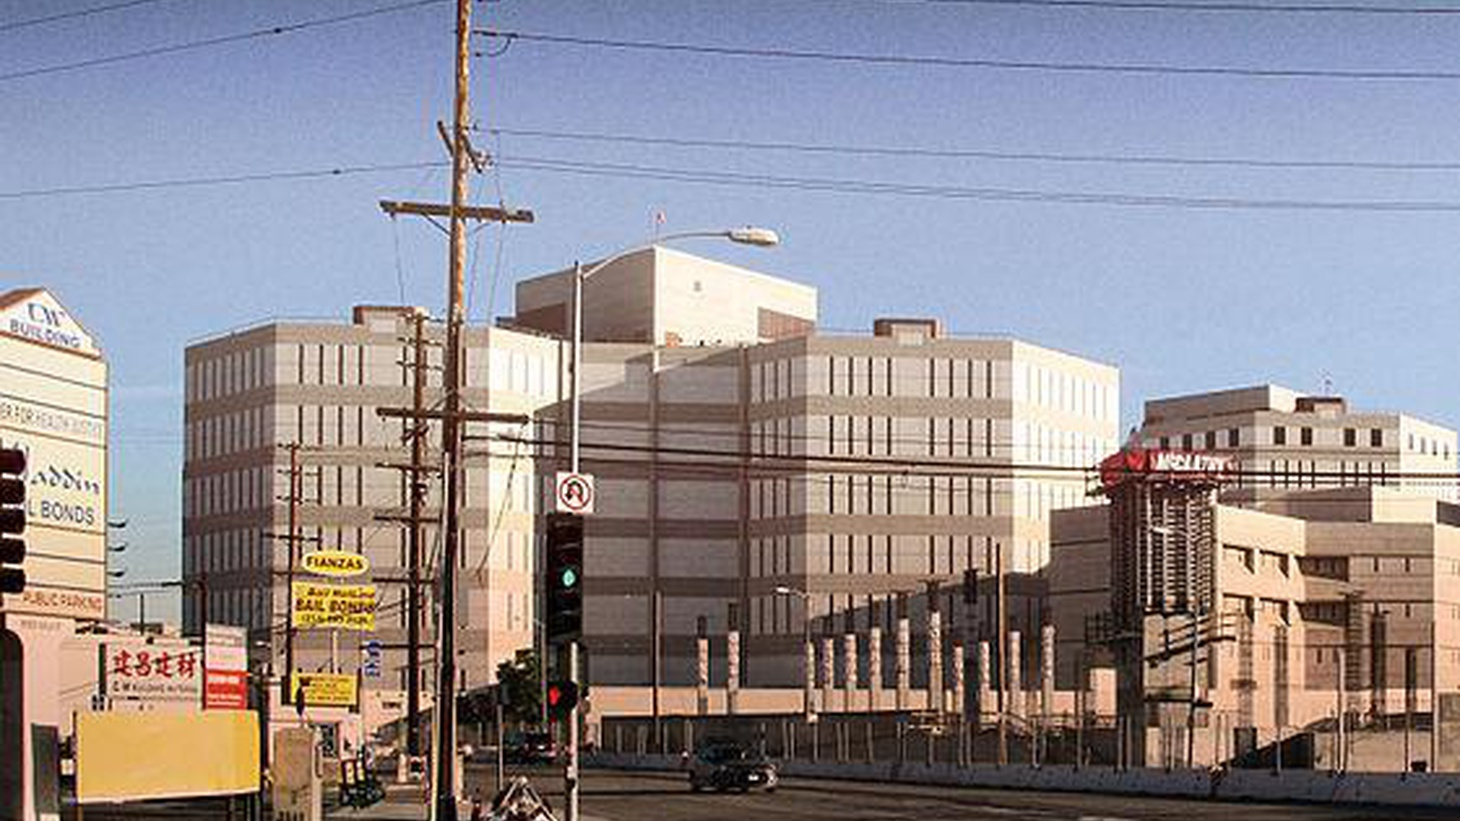 LA County is considering a new proposal to replace the downtown jail, but will a new building help address concerns about the large population of mentally ill inmates?